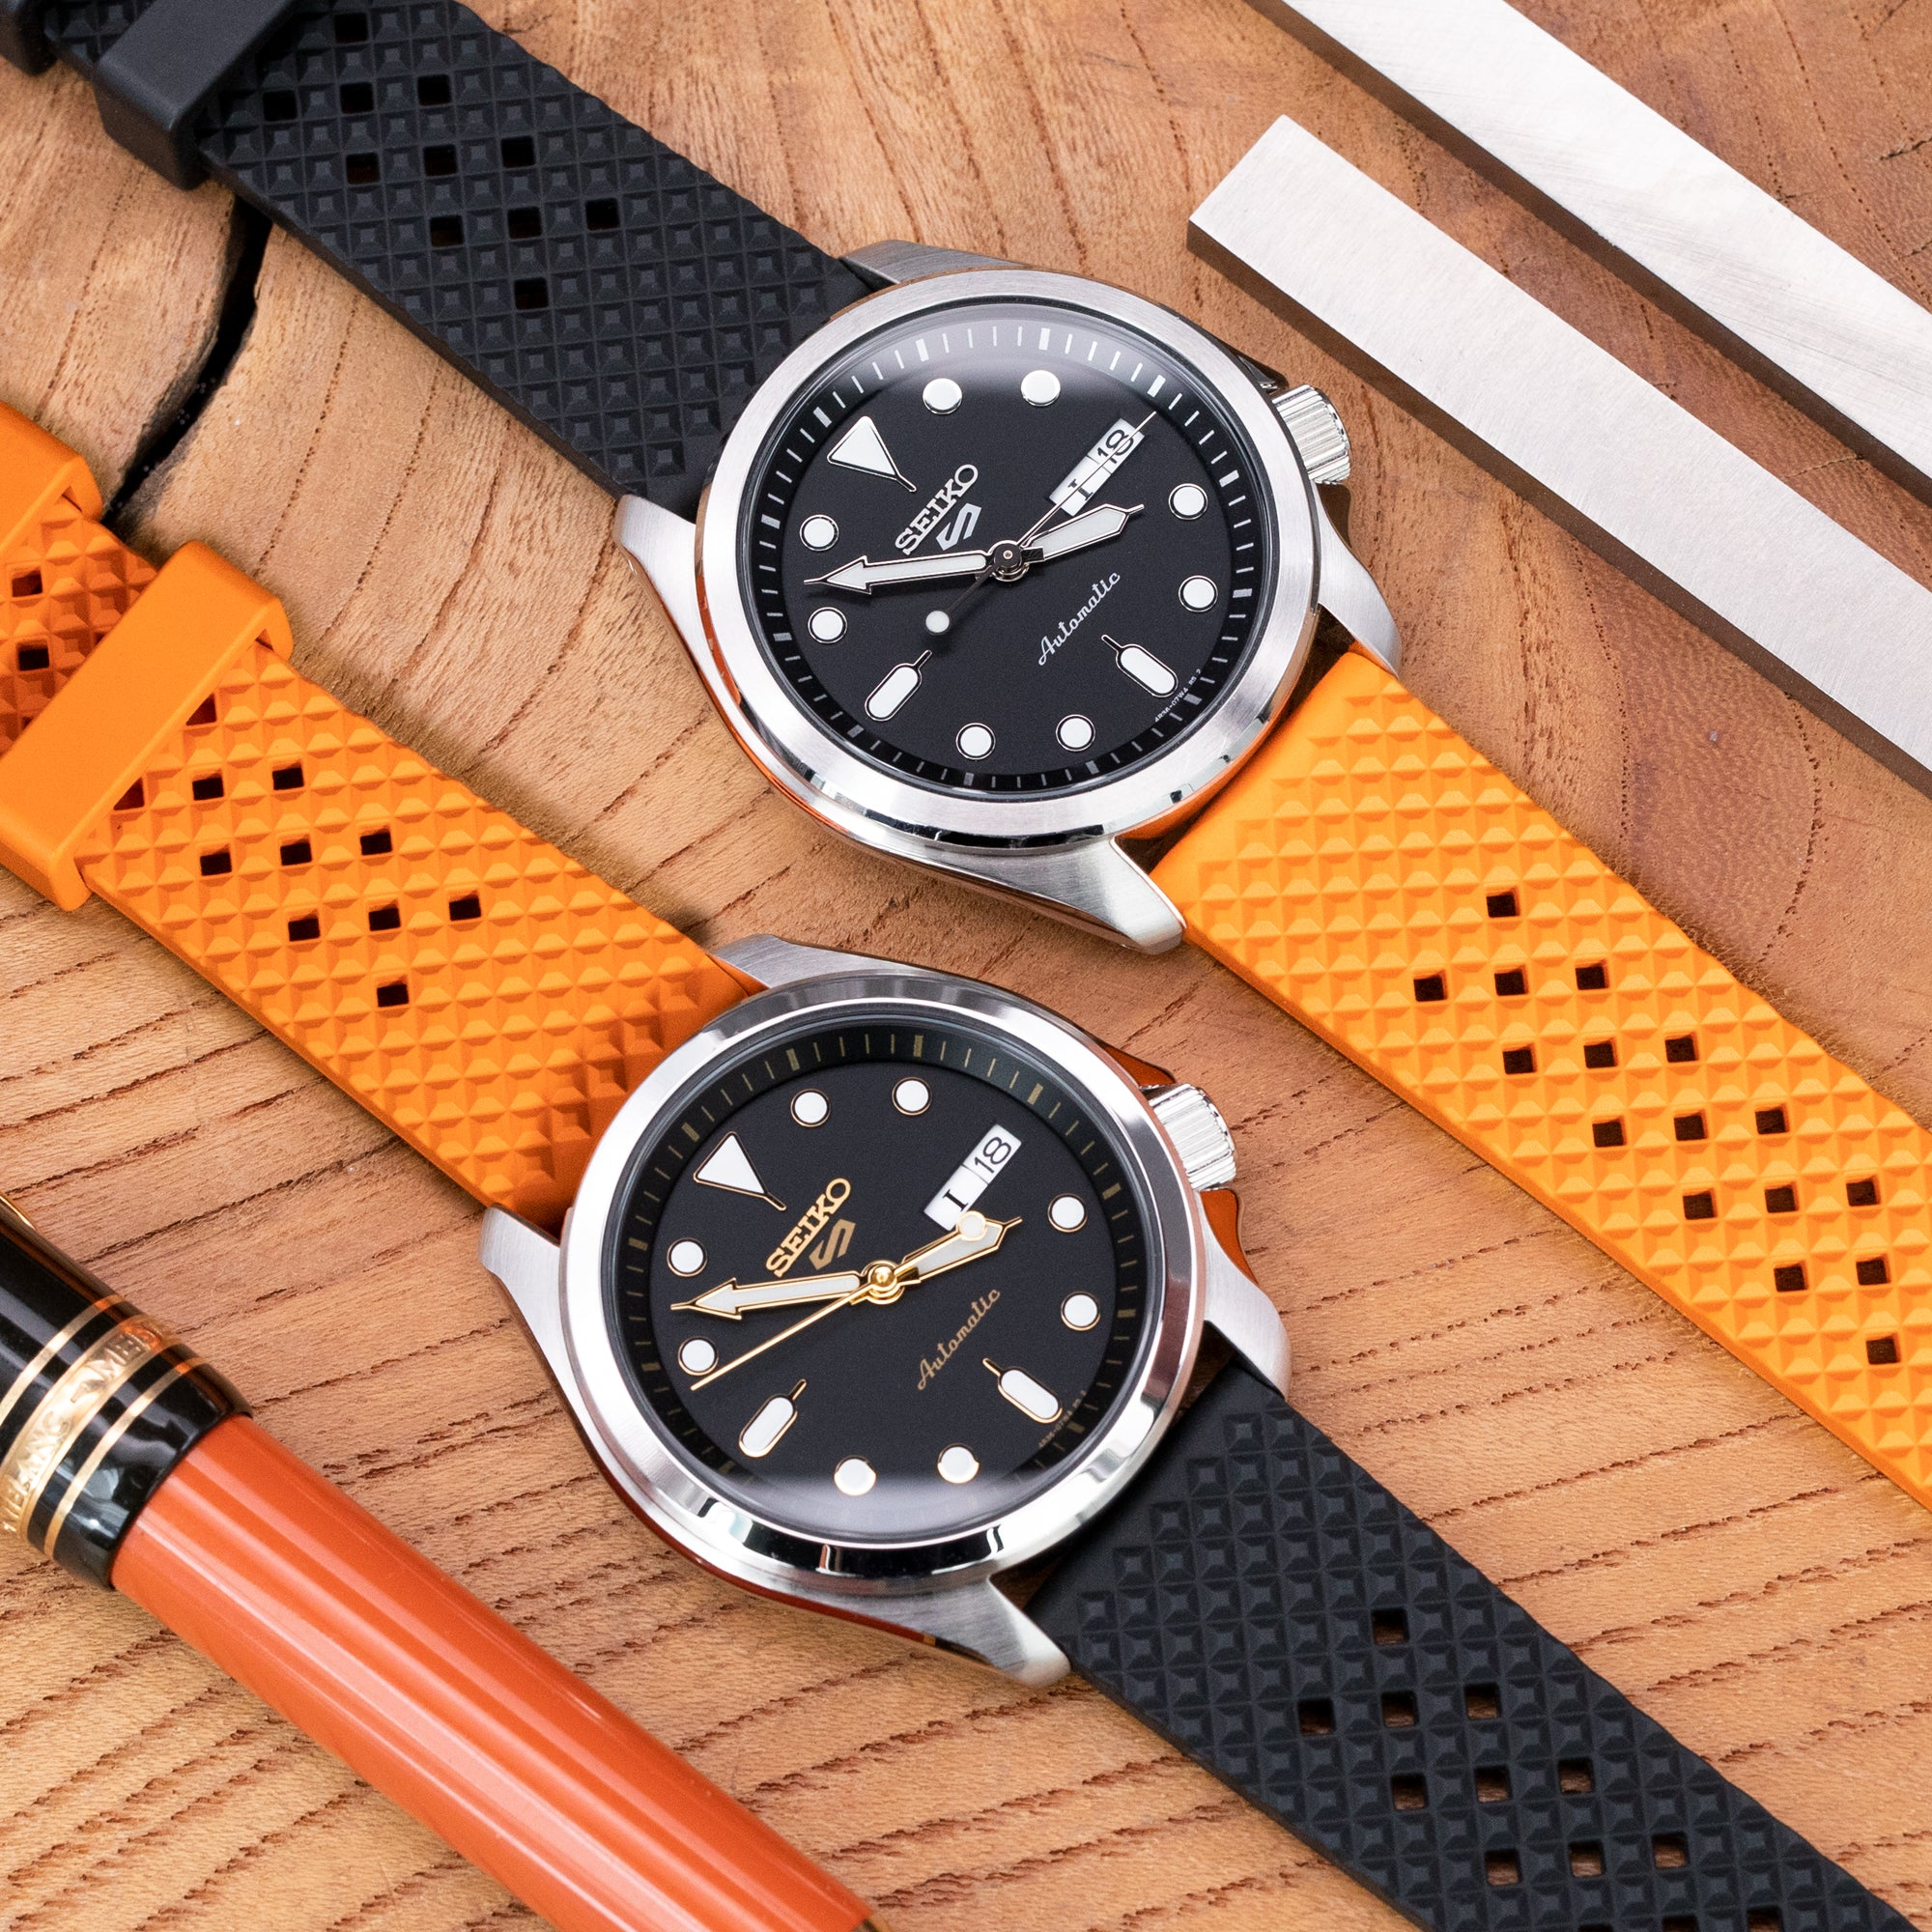 New FKM 'Rhombus' Rubber Watch Strap with Quick Release